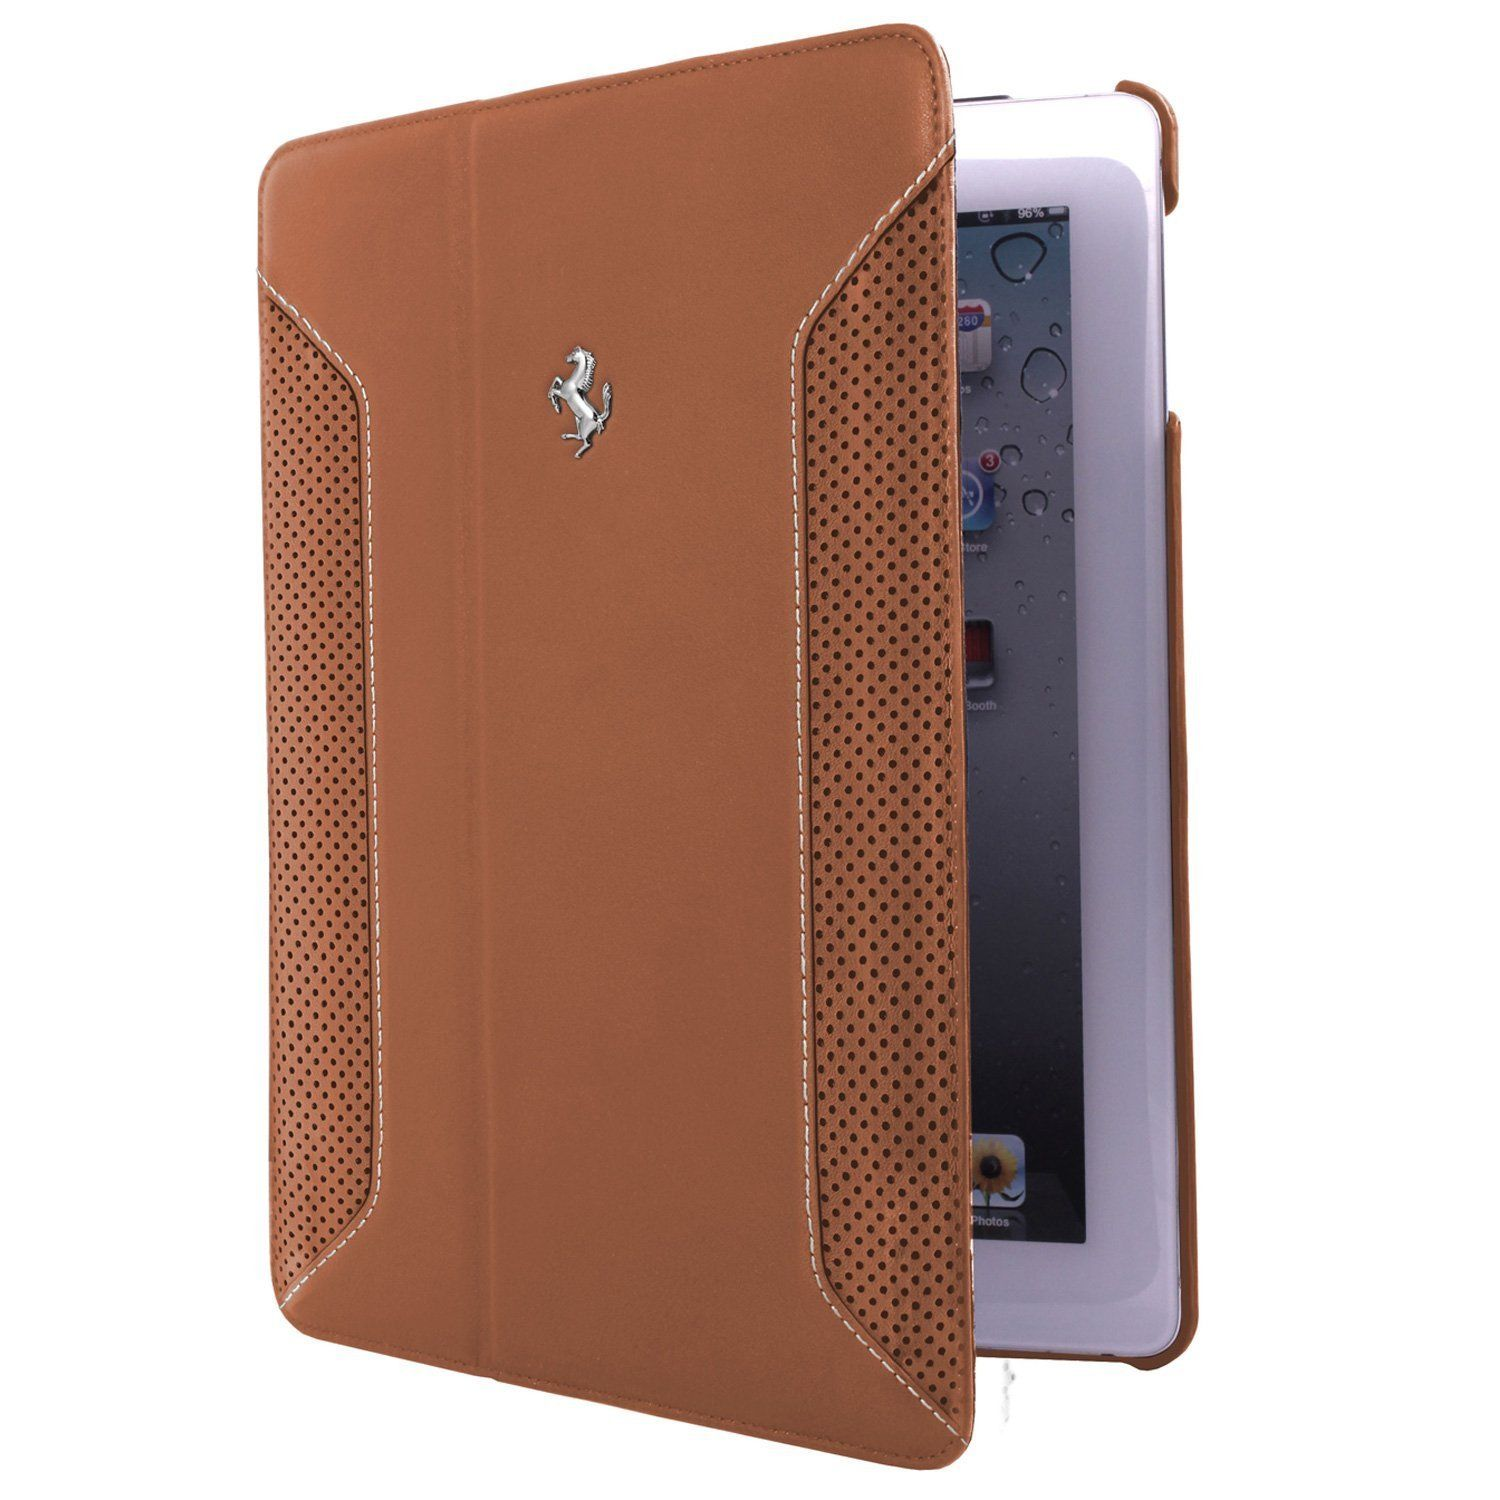 Leather iPad Air Folio Case